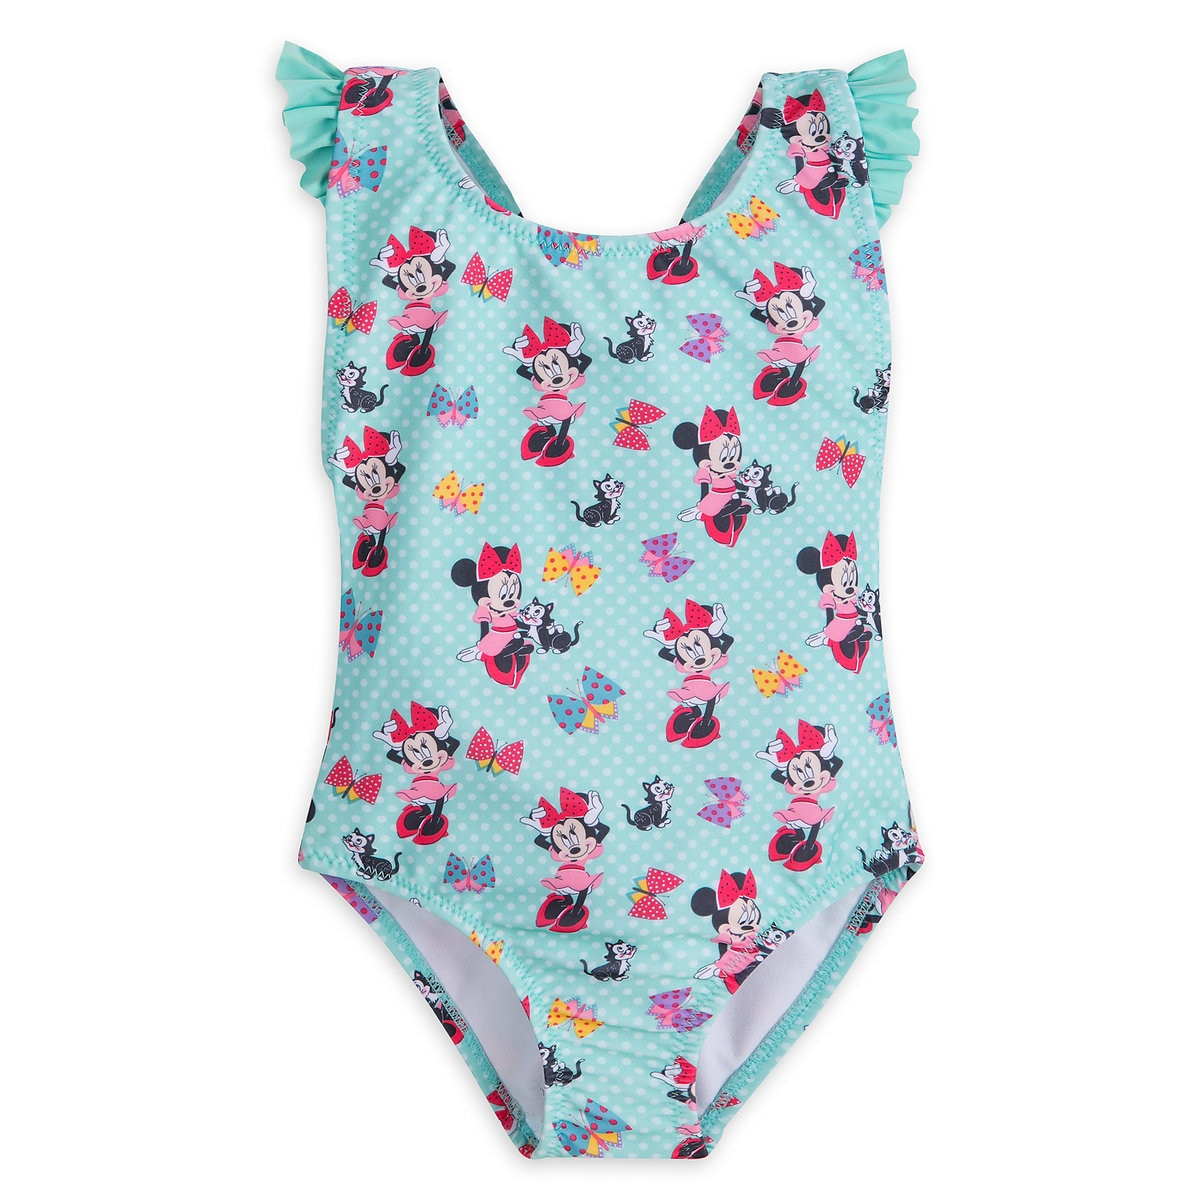 456935845a Product Image of Minnie Mouse and Figaro Swimsuit for Girls # 1